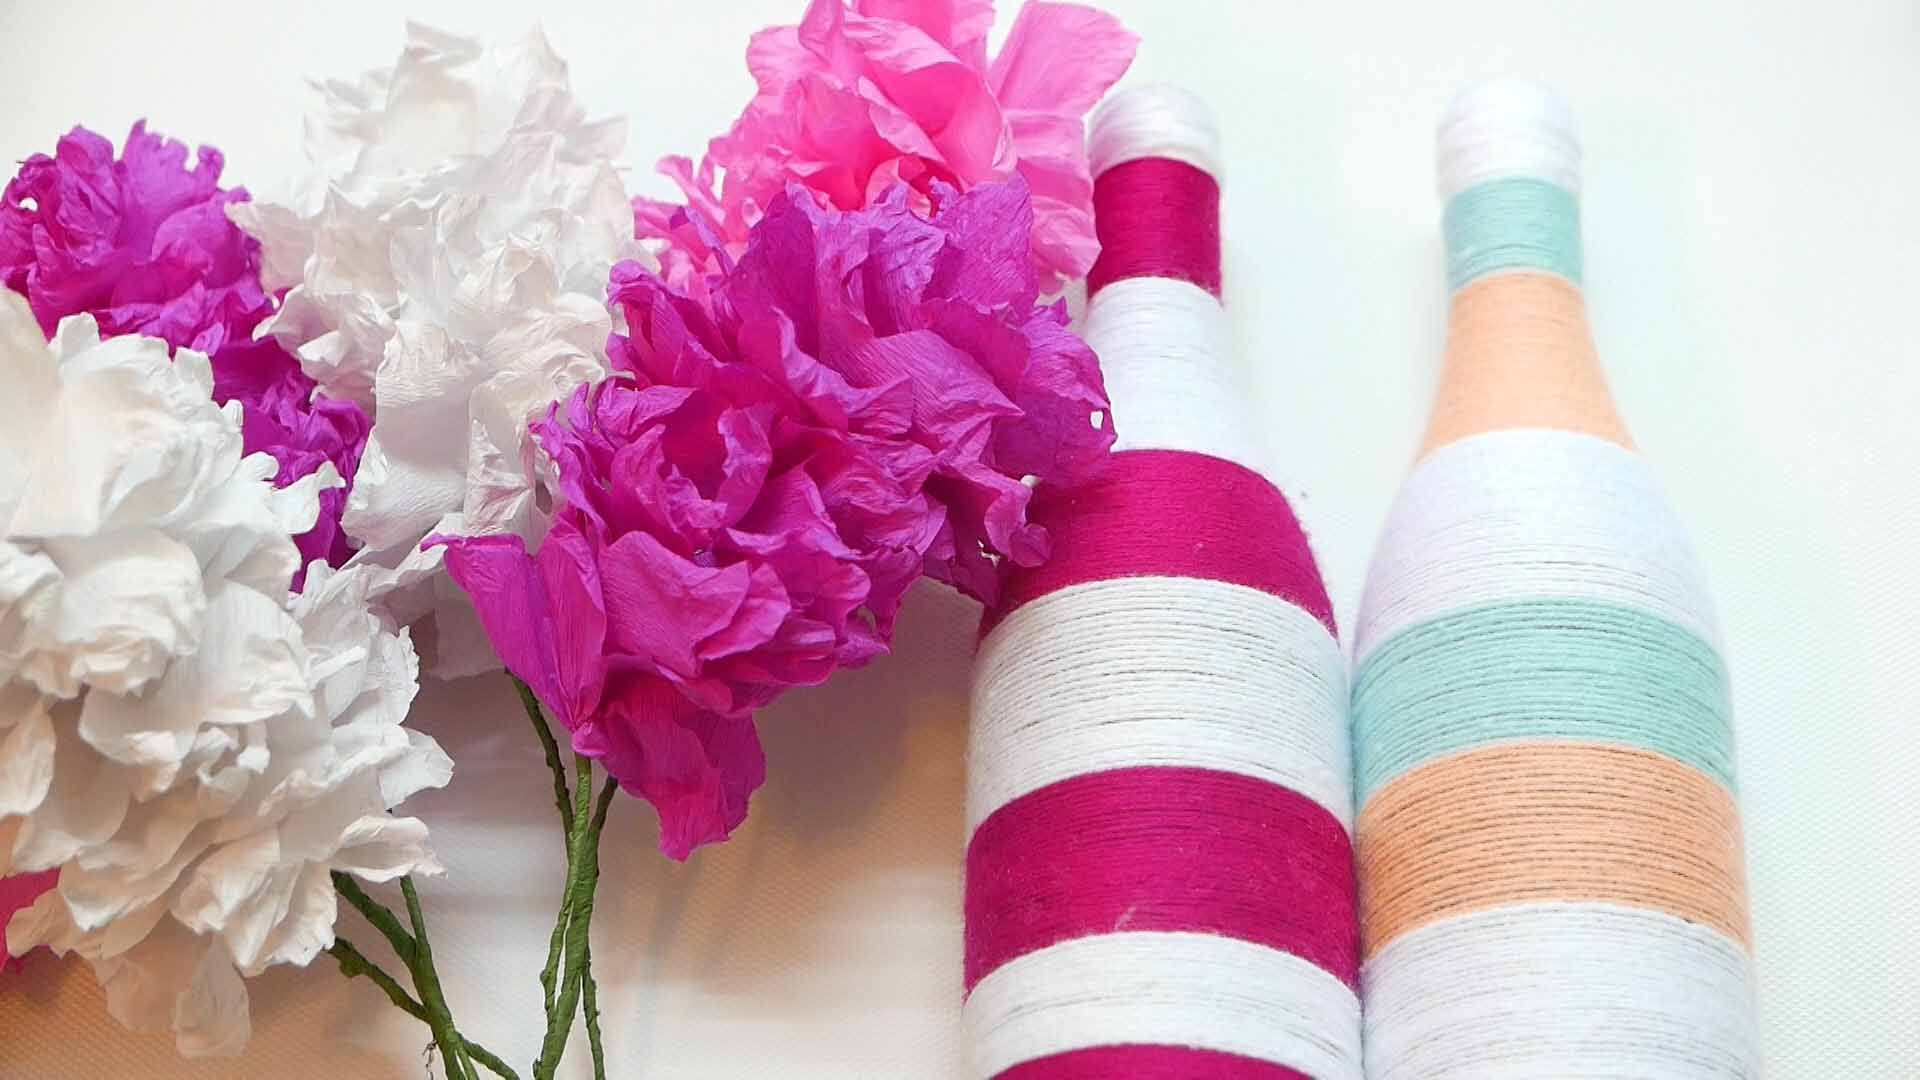 Recycle Beer Bottle To Make This Stunning Flower Pot   Diy flower ...